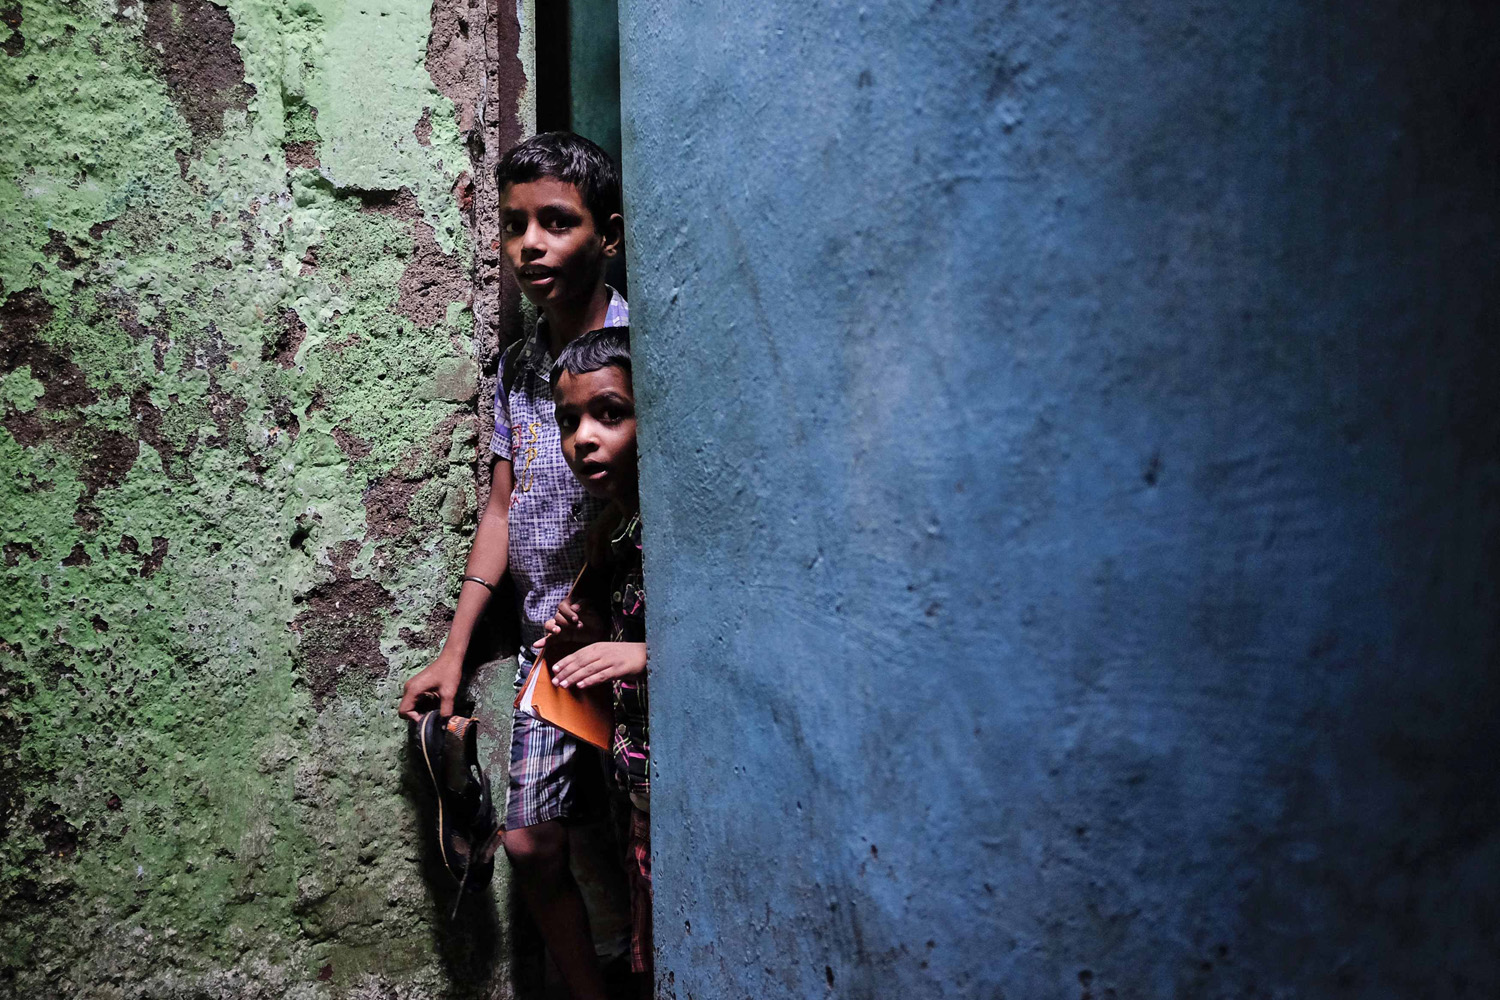 Jul. 16, 2014. Schoolchildren walk through an alley after attending private tuition at a slum in Mumbai, India.